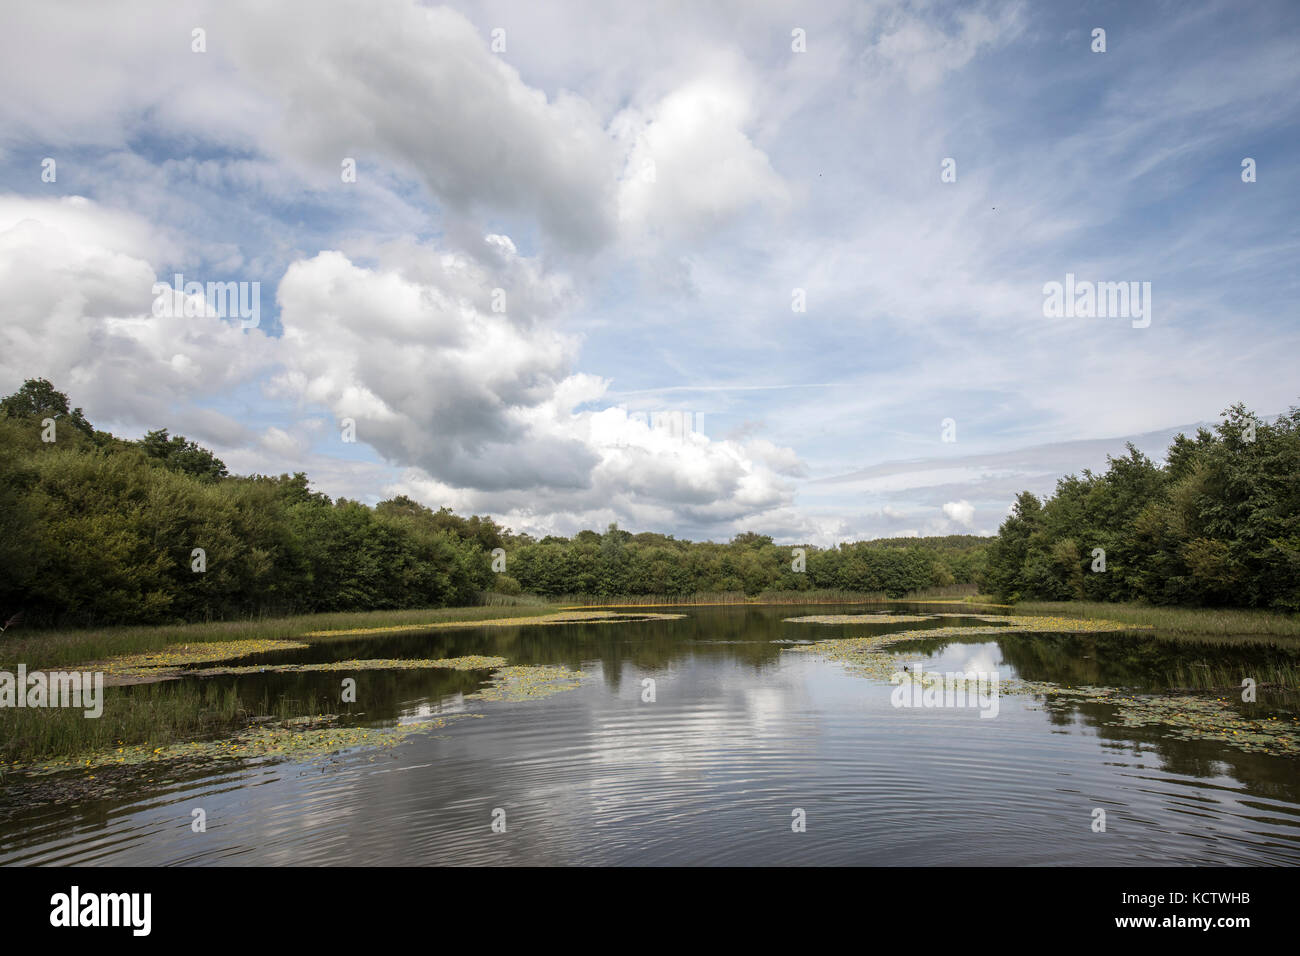 Lower Lake, Penllergare Valley, Swansea, Wales, UK - Stock Image